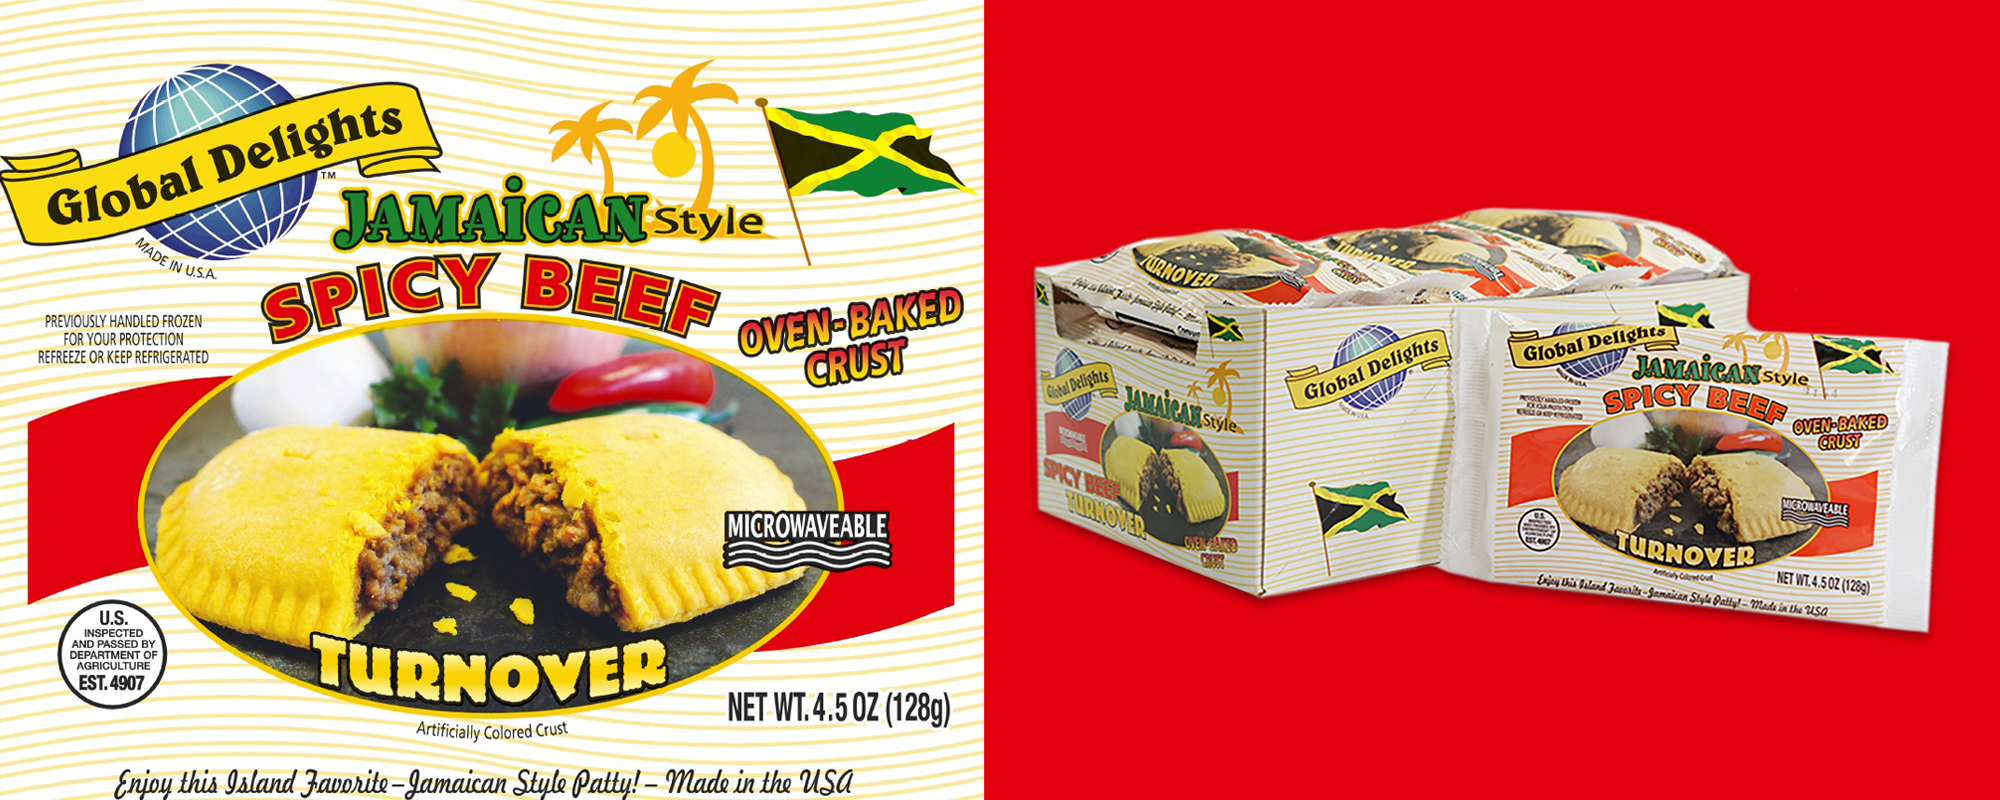 Jamaican Style Spicy Beef Turnover - Caribbean Products